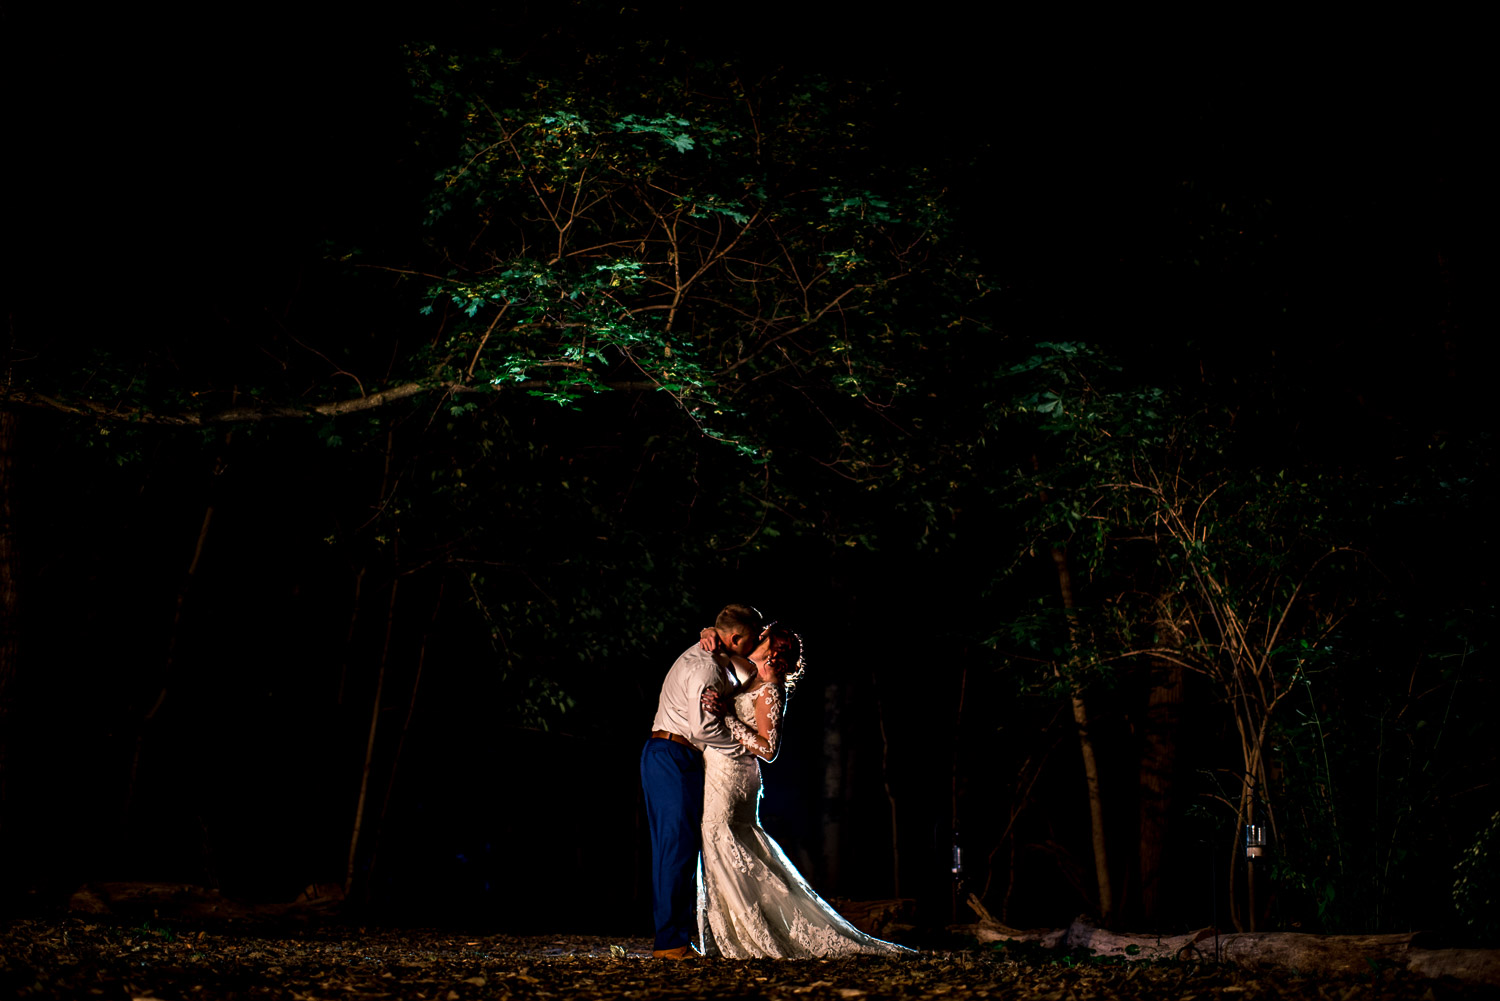 creative night portrait of bride and groom kissing in the forest